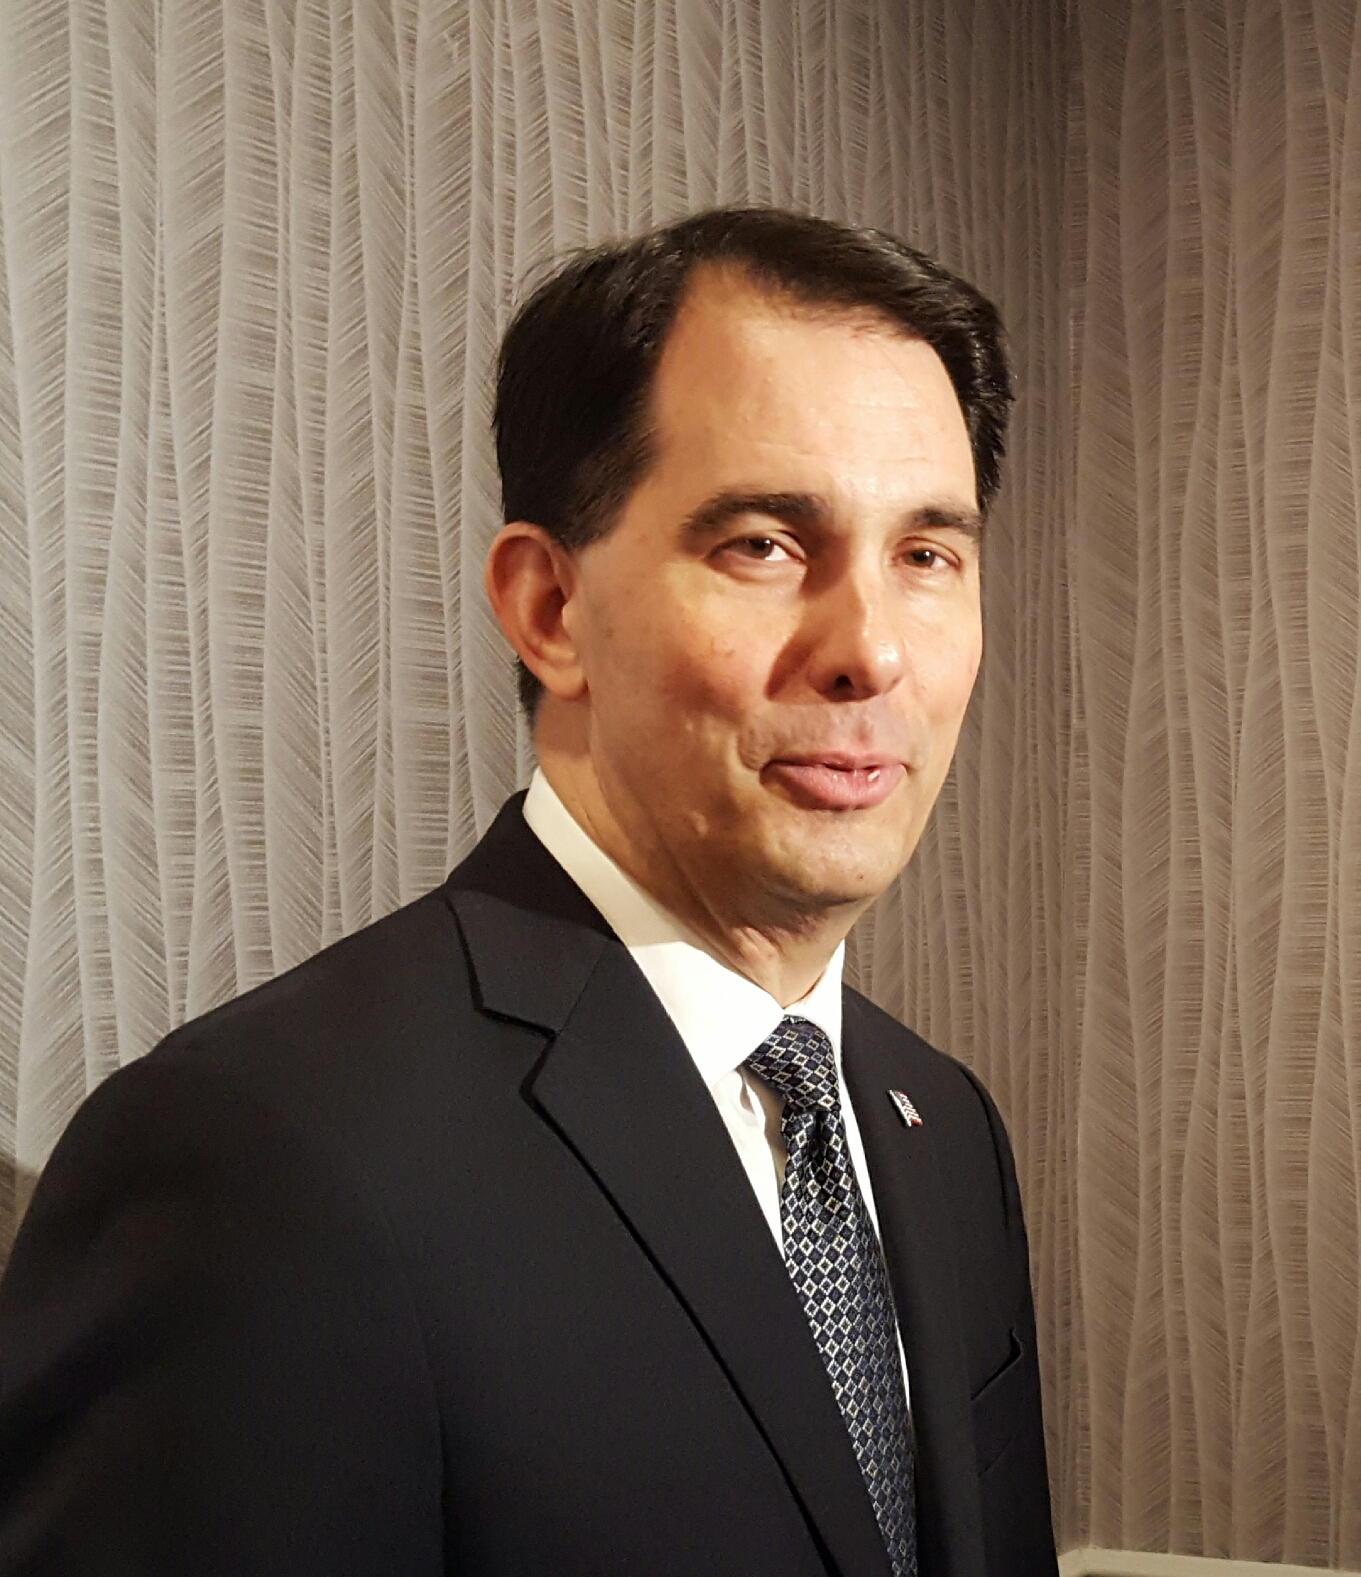 Walker to sign CBD oil, Project Labor Agreement bills